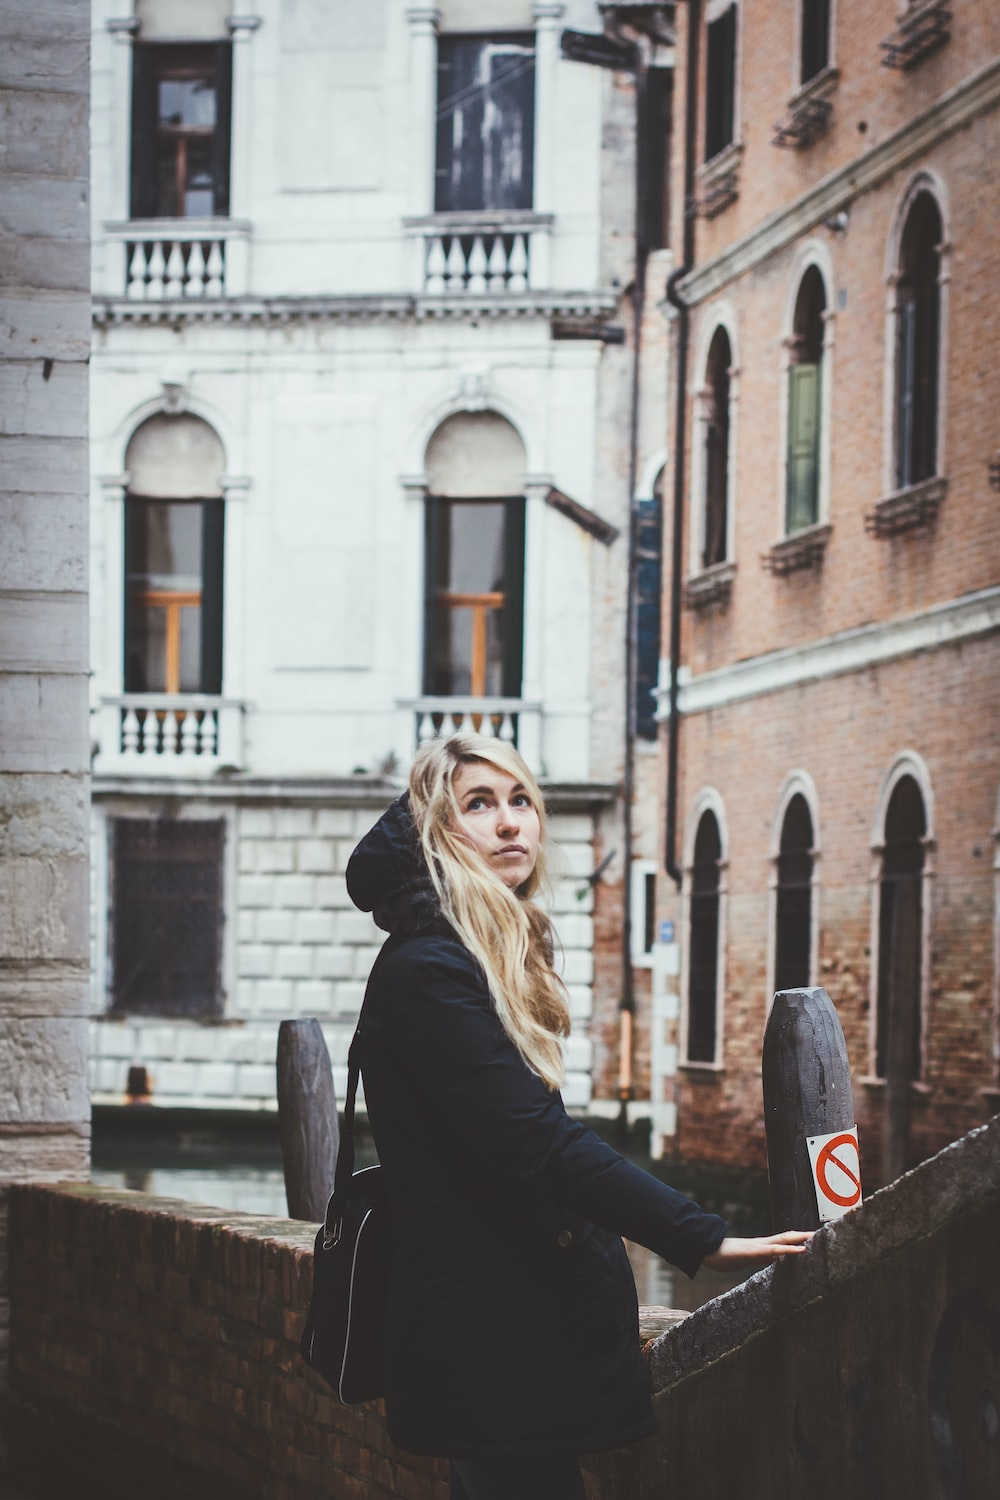 blonde-haired woman in black coat holding on concrete handrail